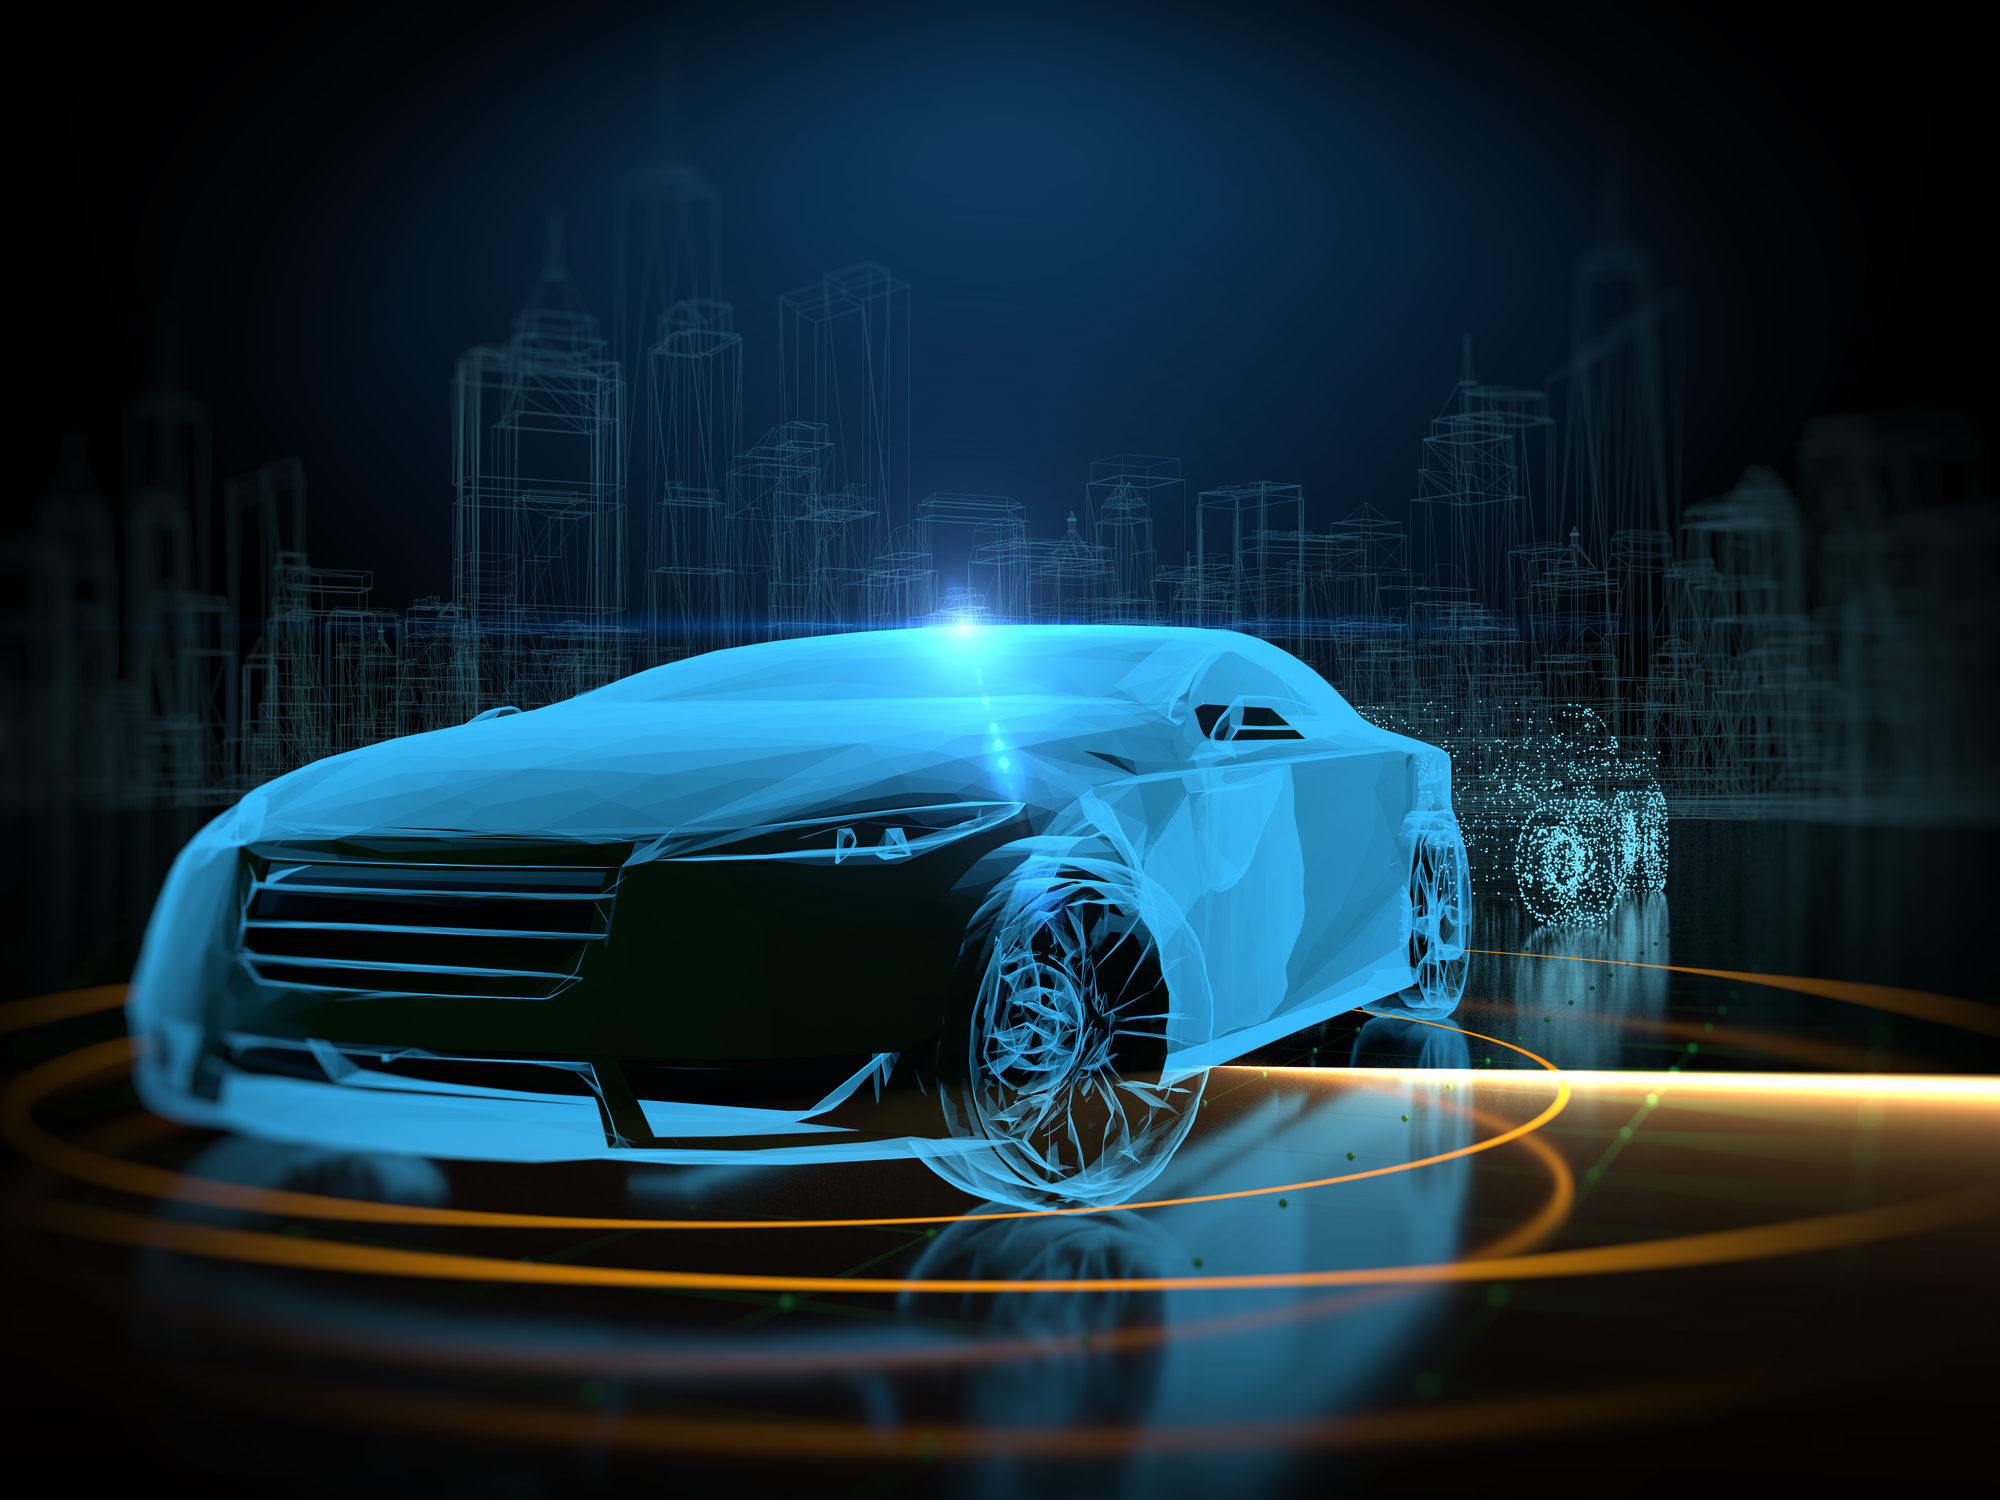 reality: leading-edge technologies driving innovation in